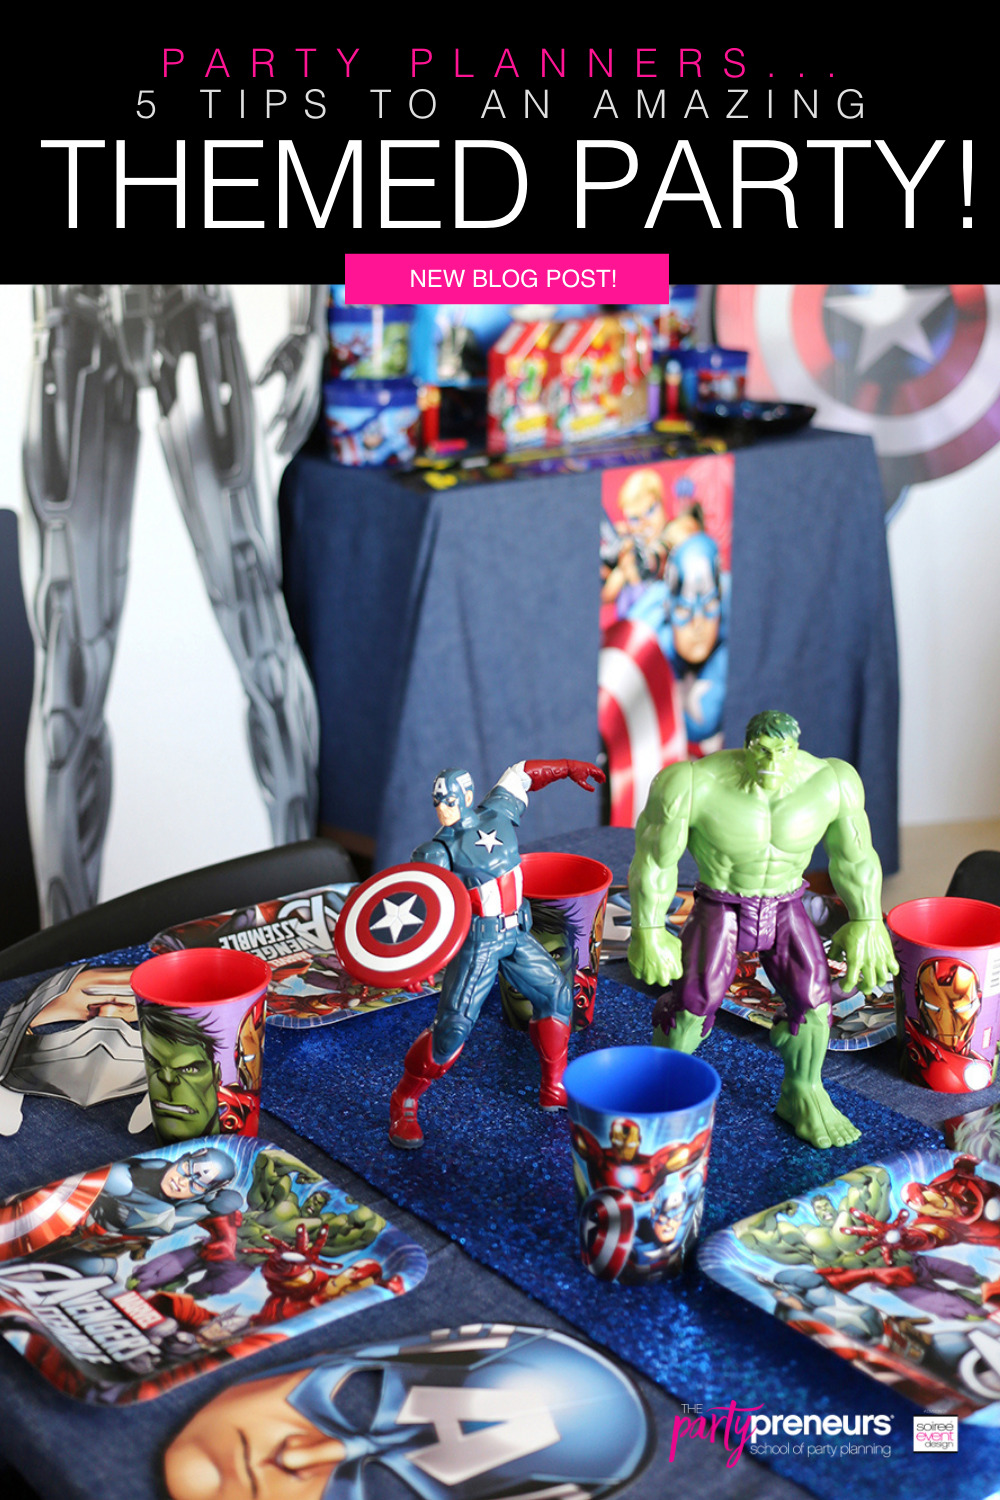 5 Tips to an Amazing Themed Party!